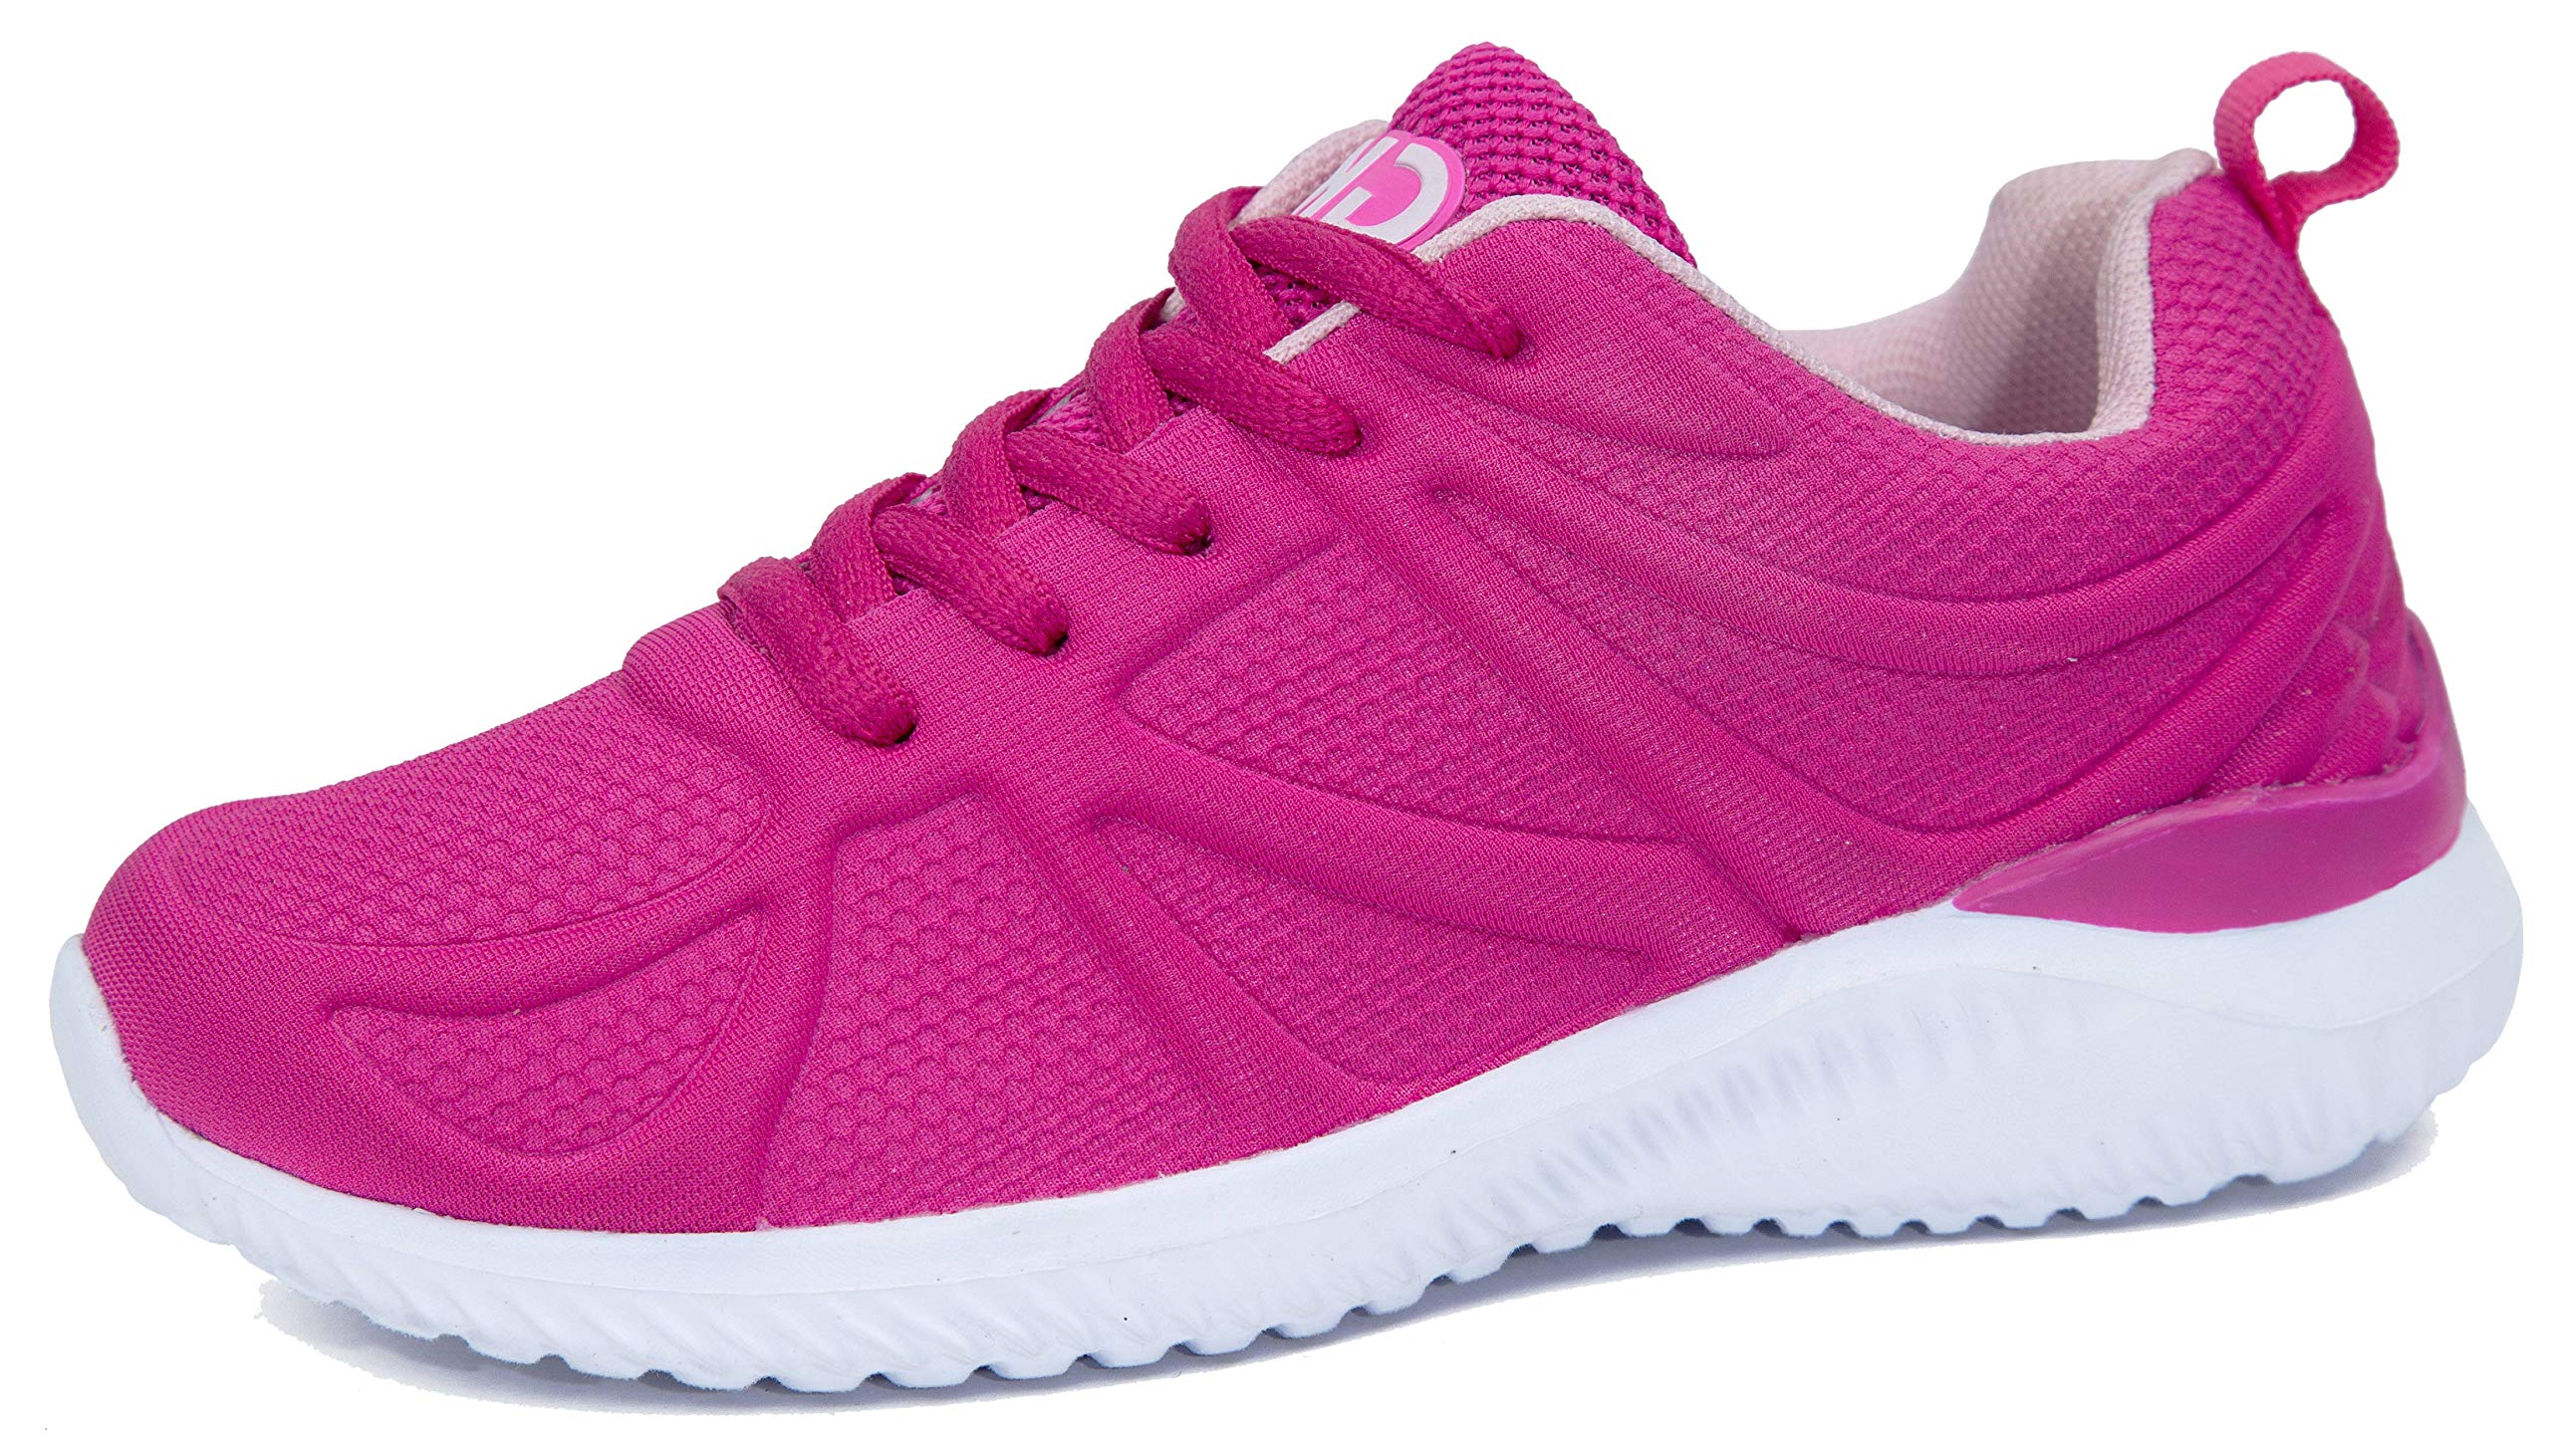 Kids Athletic Tennis Shoes - Little Kid Sneakers with Girl and Boy Sizes Fucshia Size 1 Little Kid (Fucsia - 32) 1 M US by Gimbo Kids